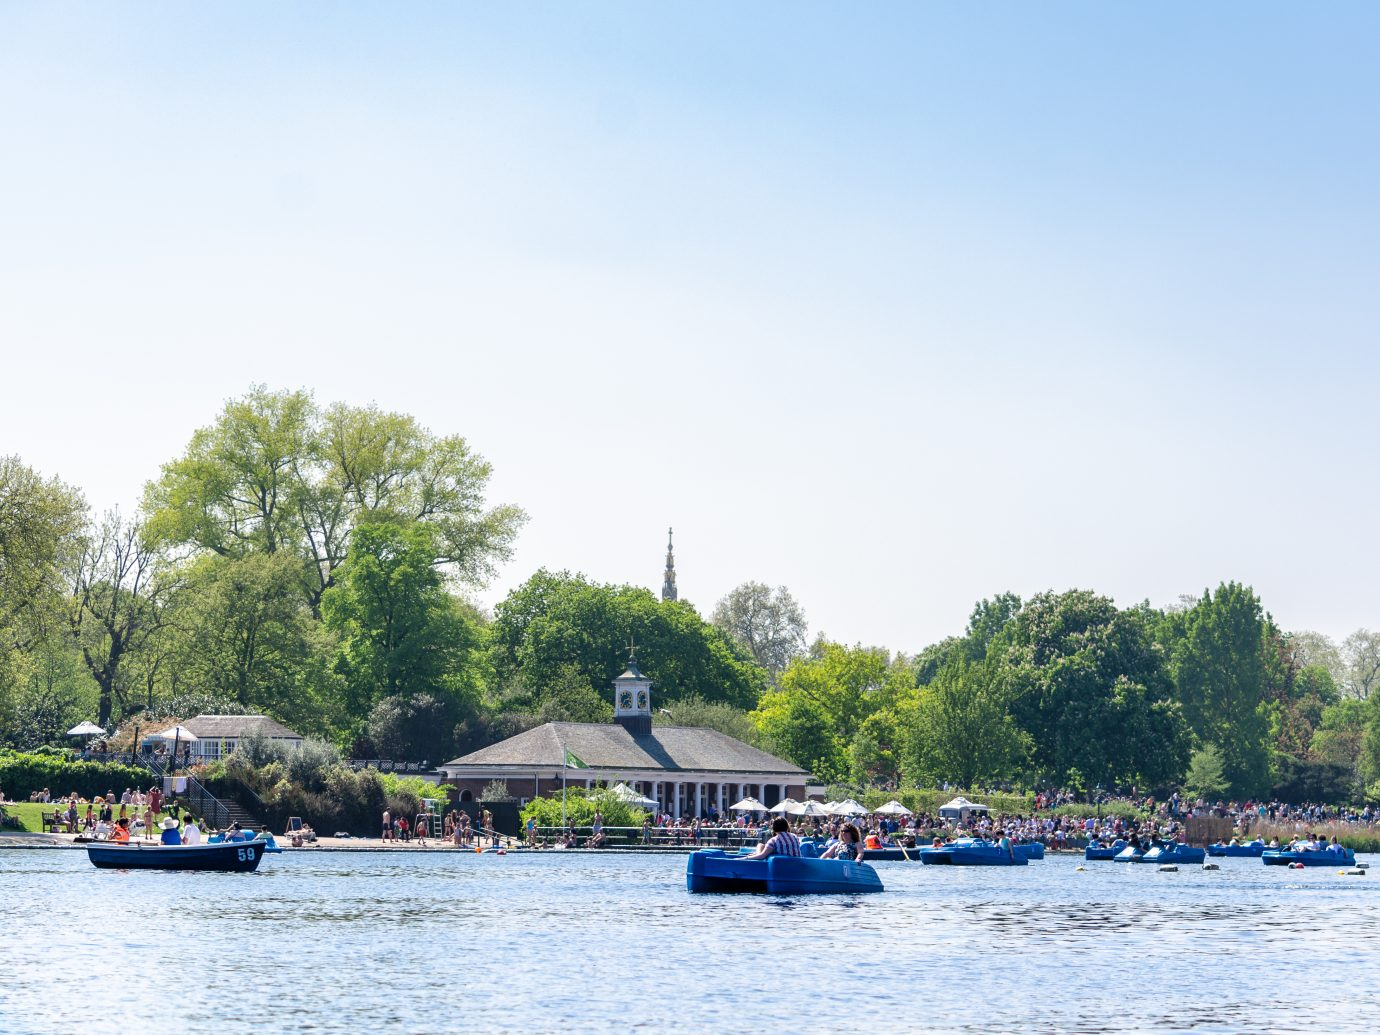 Weekend fun at the Serpentine lake in Hyde Park